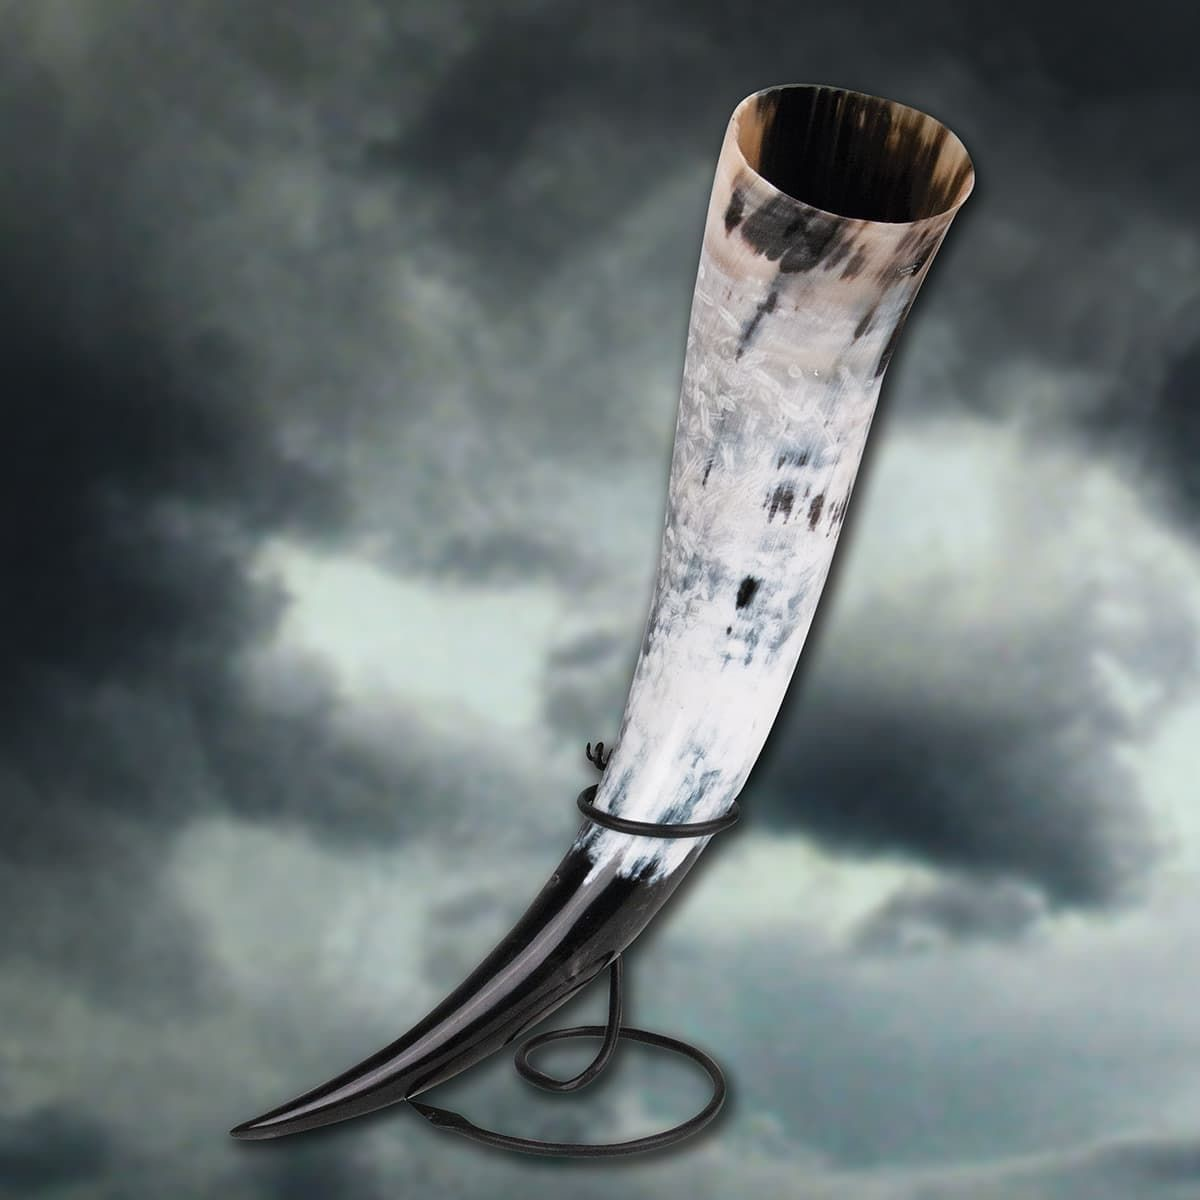 Odin's Oversized Drinking Horn with Iron Stand